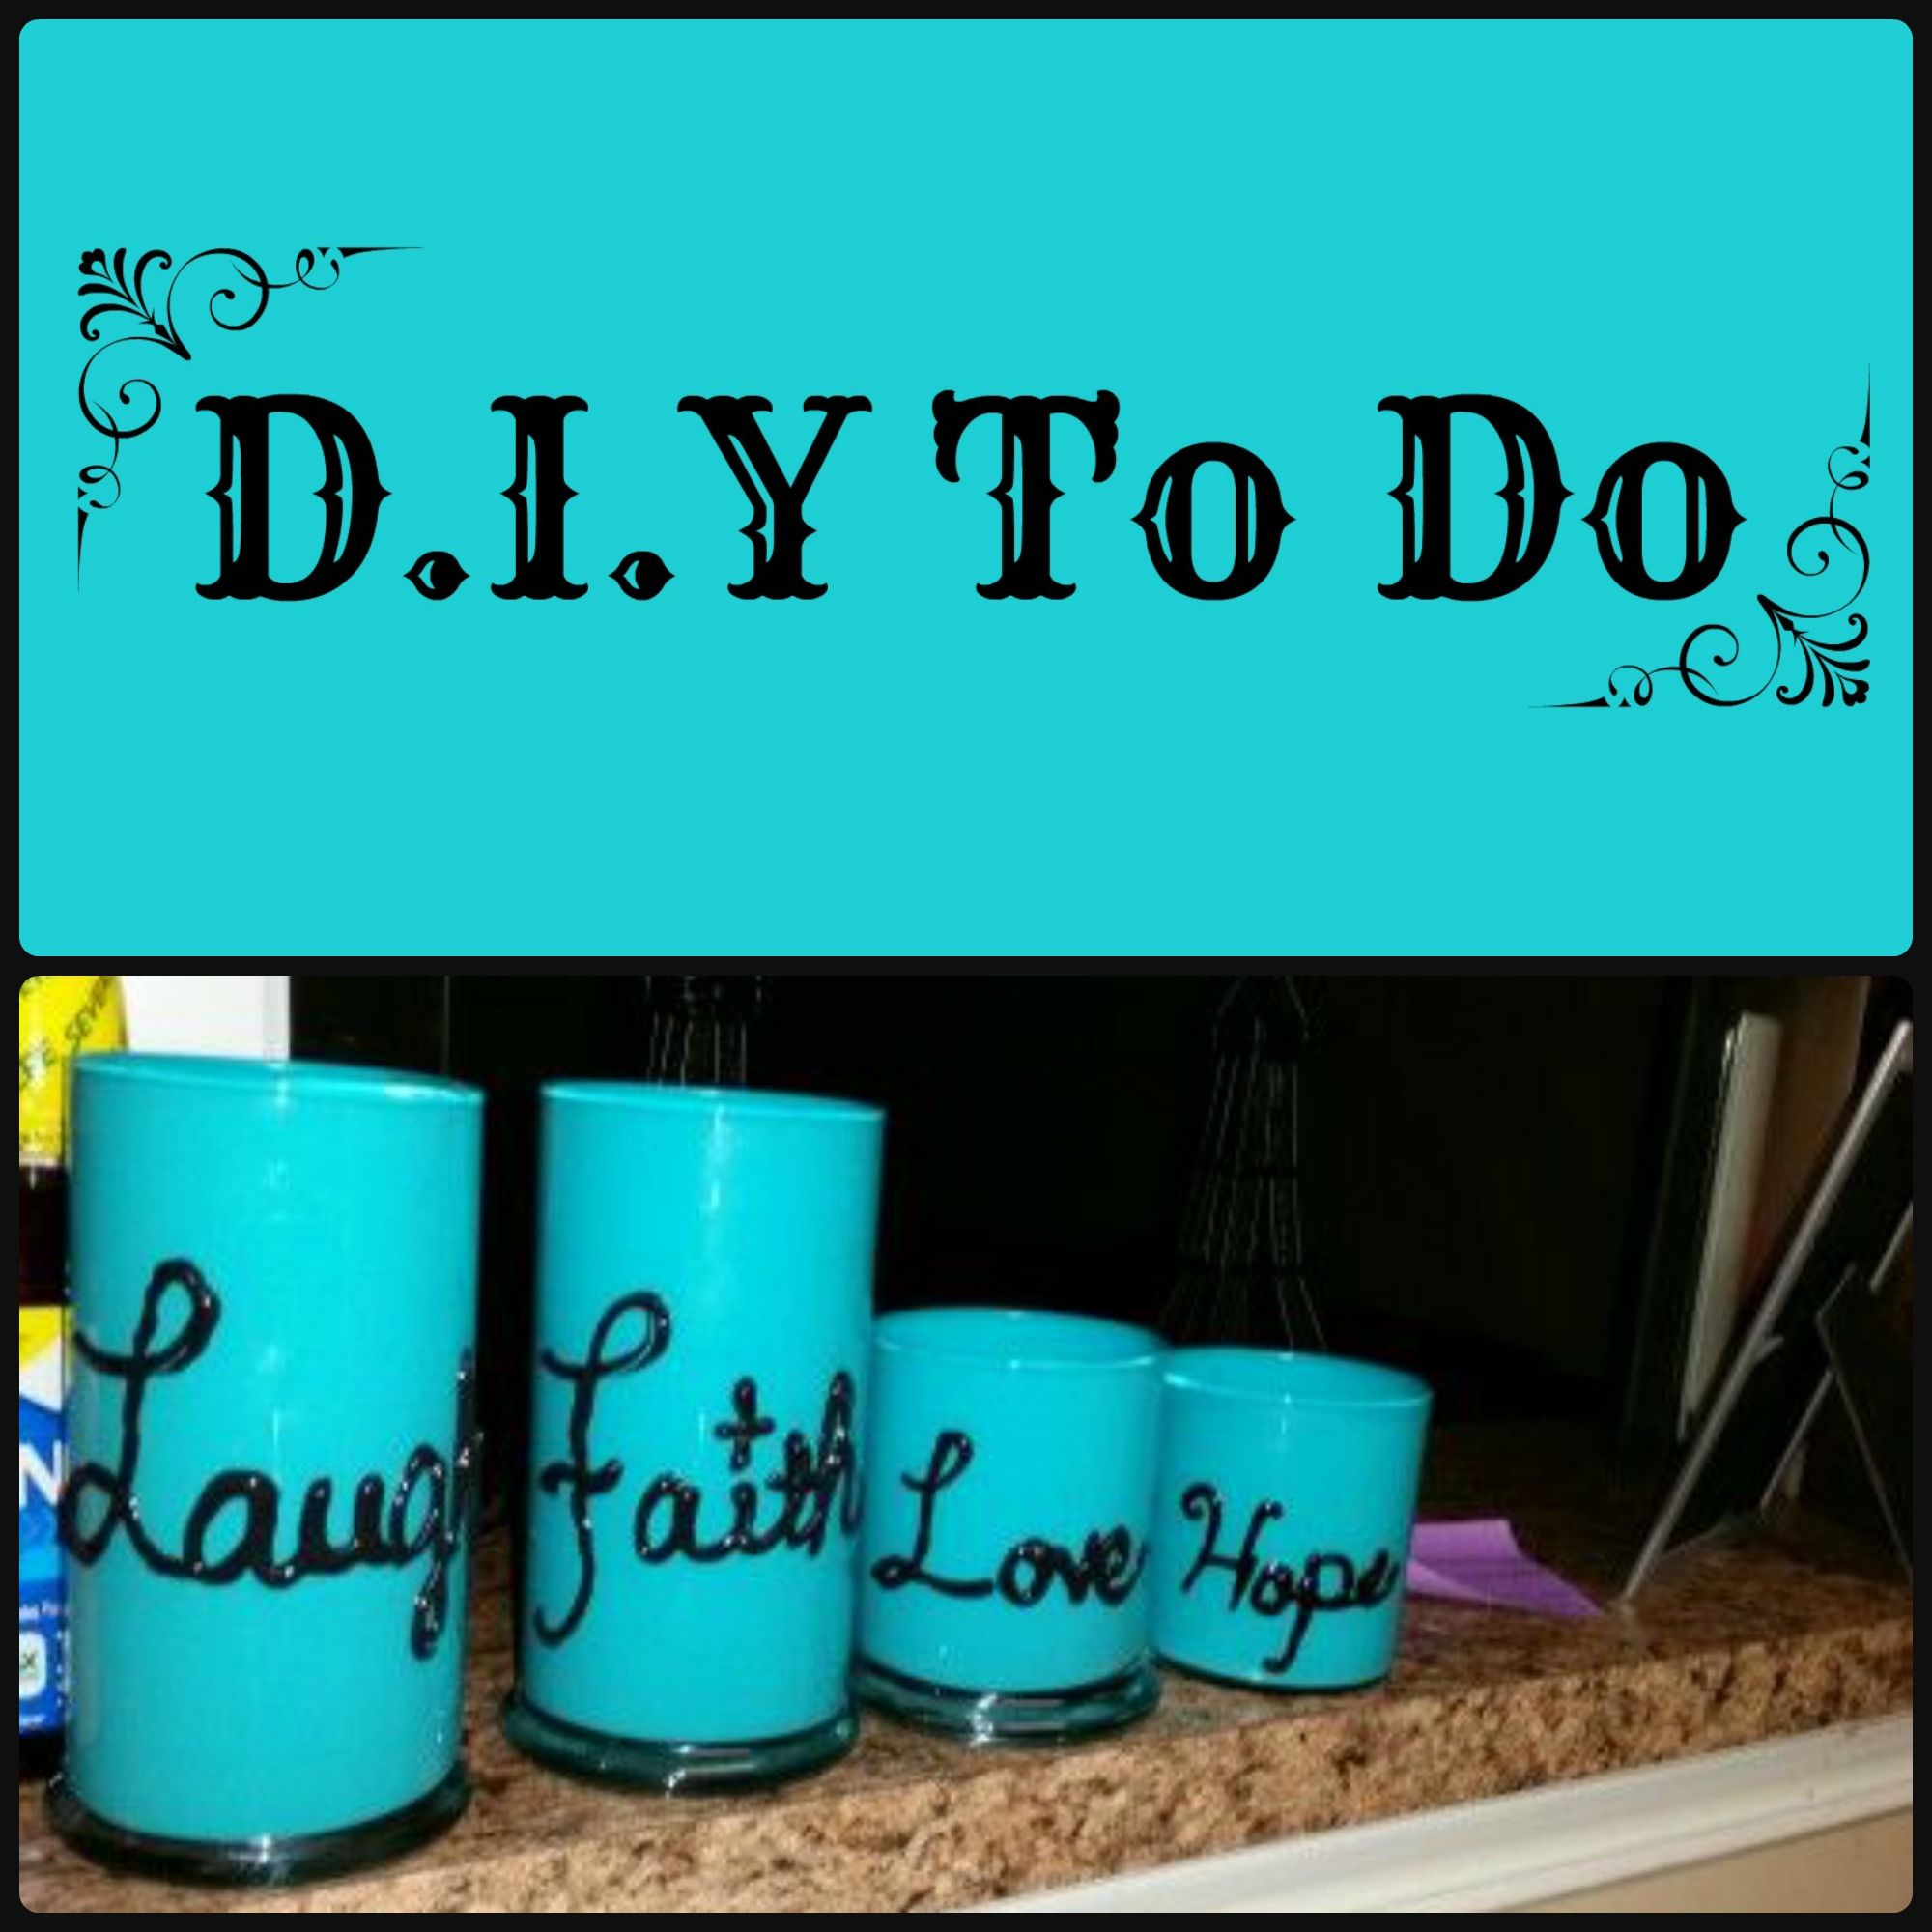 Cute cover photo and a project i created with yankee candle jars and